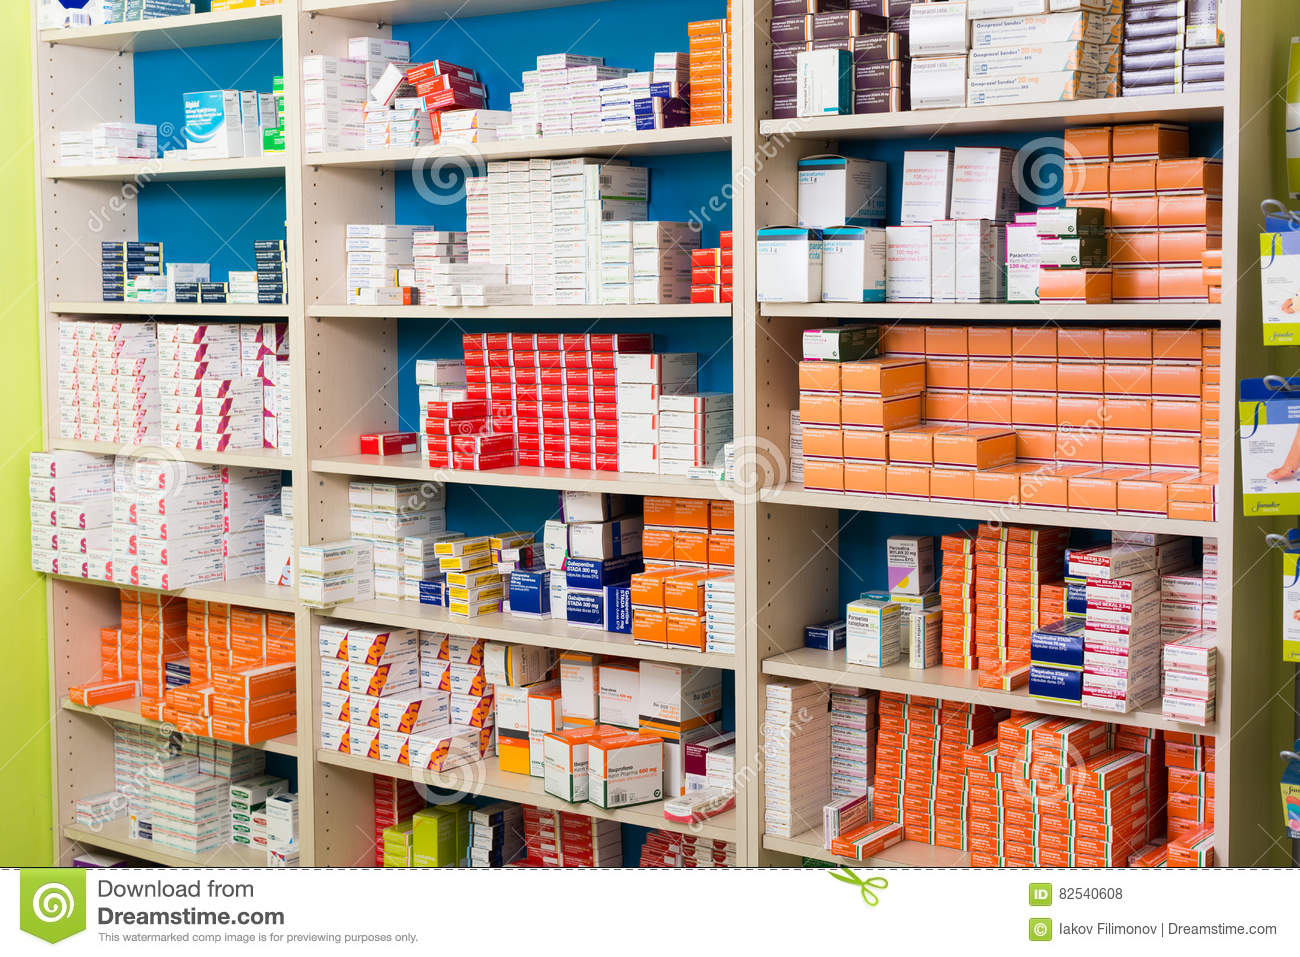 Pharmaceutical Storage Cabinets Variety Of Pharmaceutical Products And Medicine In Shelves